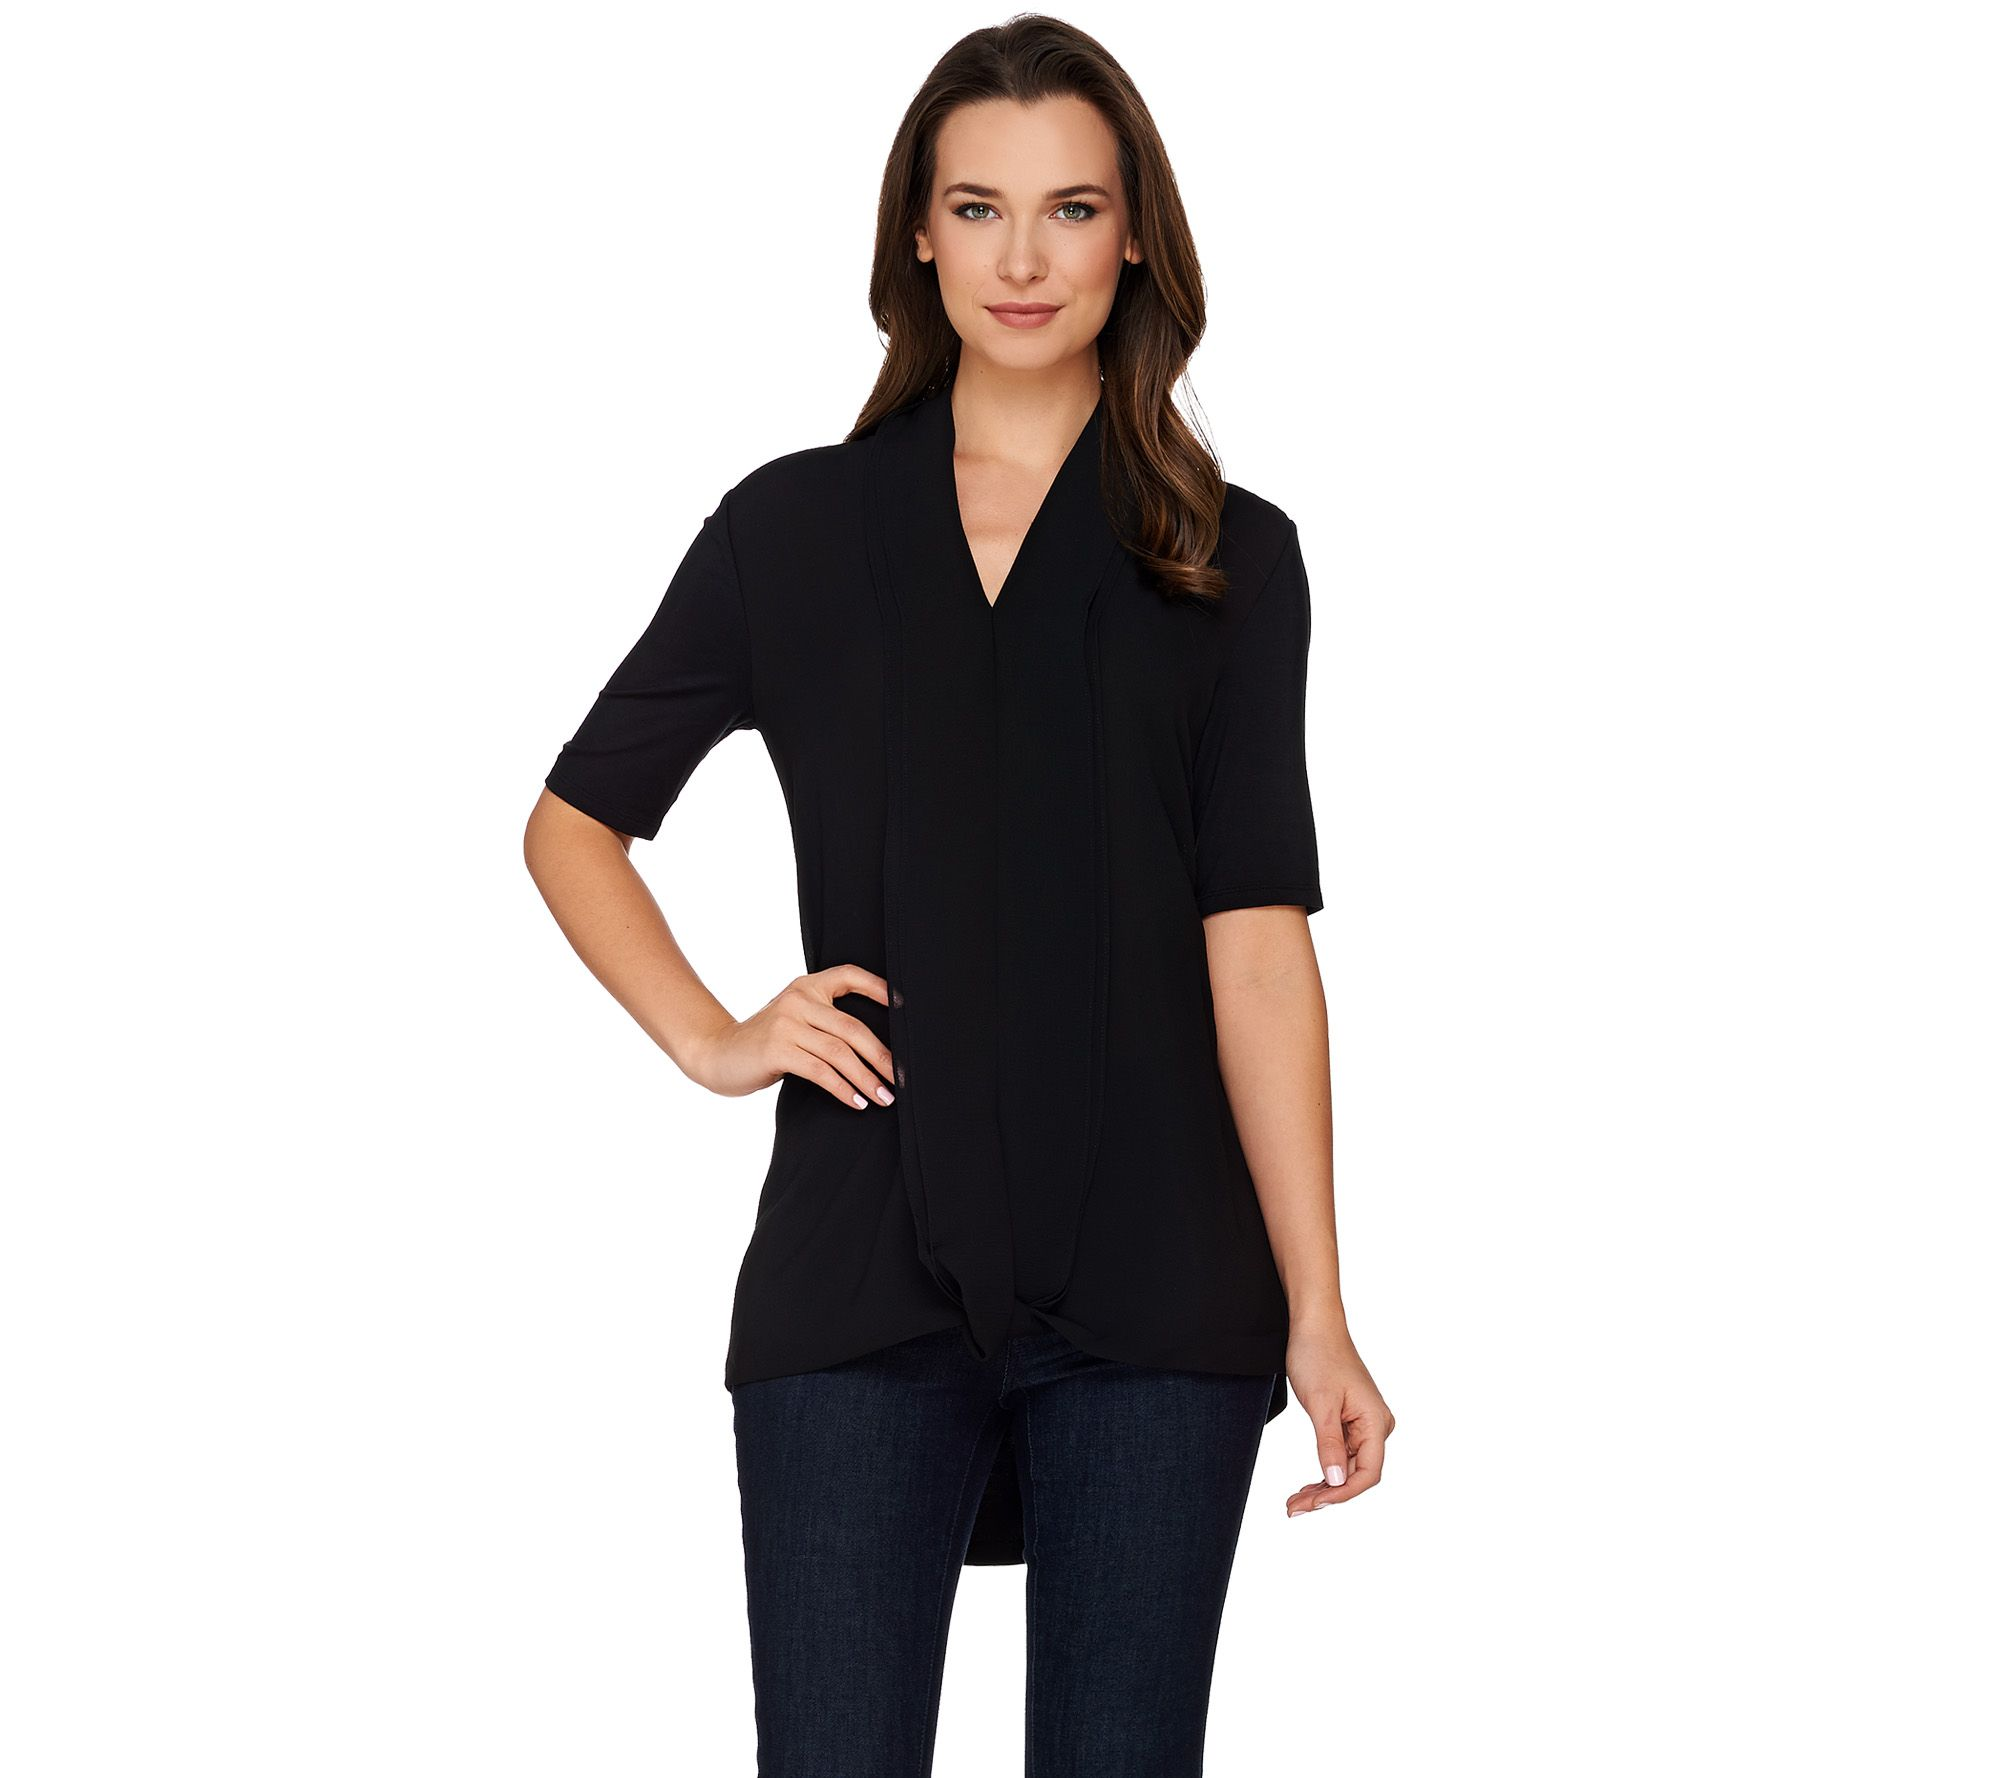 H by Halston Short Sleeve Knit Top with Chiffon Drape Front - Page 1 — QVC .com